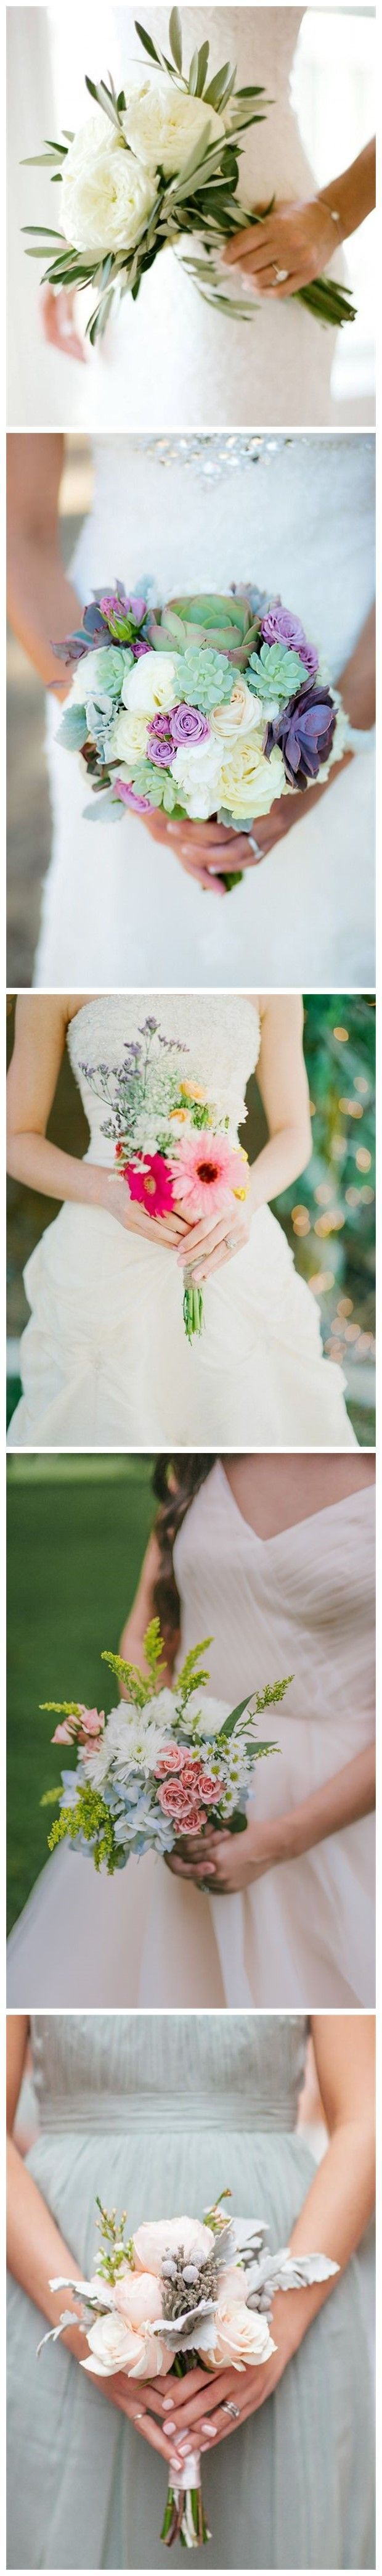 Wedding Flowers » 18 Adorable Small Wedding Bouquets for Your Big Day!❤️ See more: http://www.weddinginclude.com/2017/02/adorable-small-wedding-bouquets-for-your-big-day/